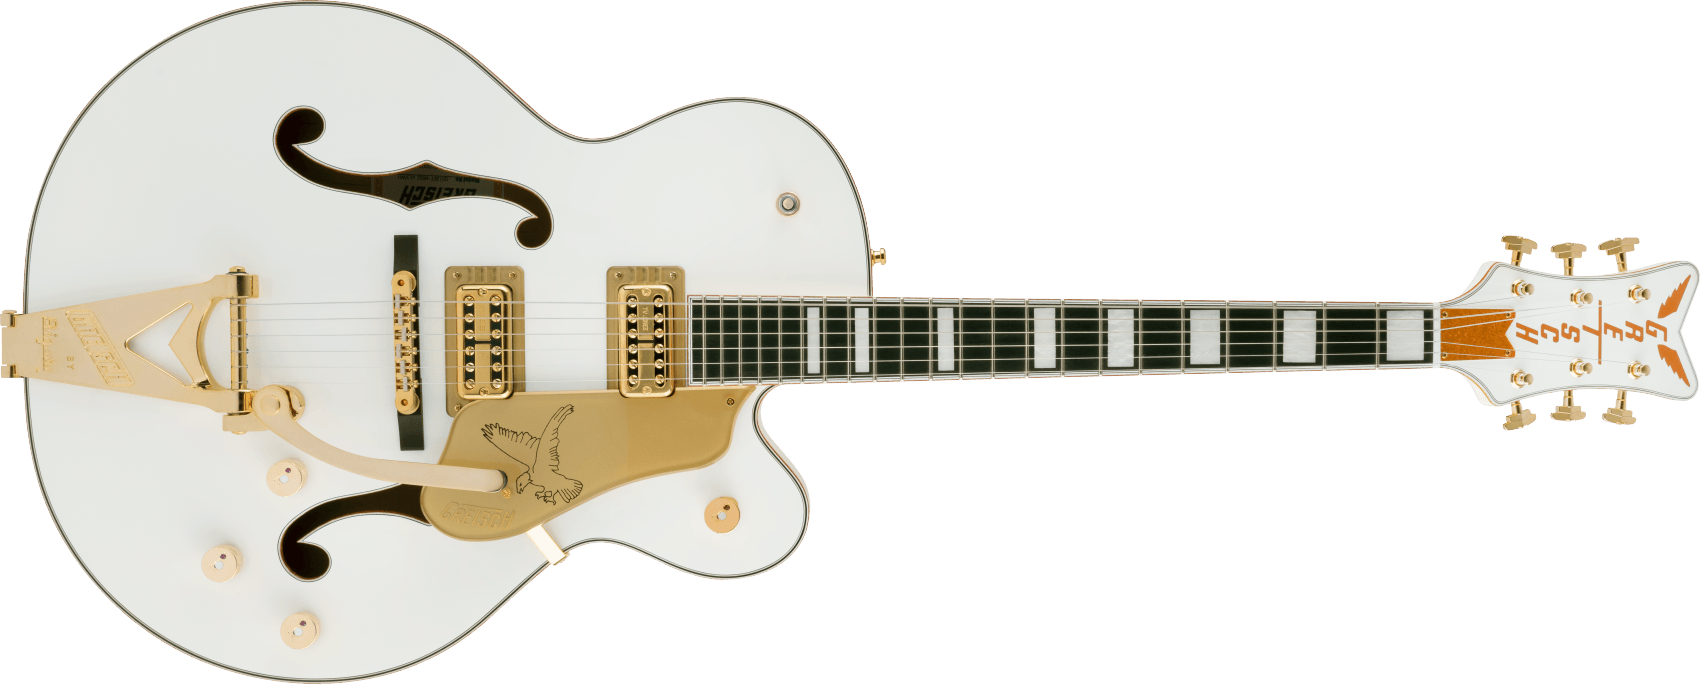 Gretsch Revela Falcon de Assinatura de Michael Guy Chislett